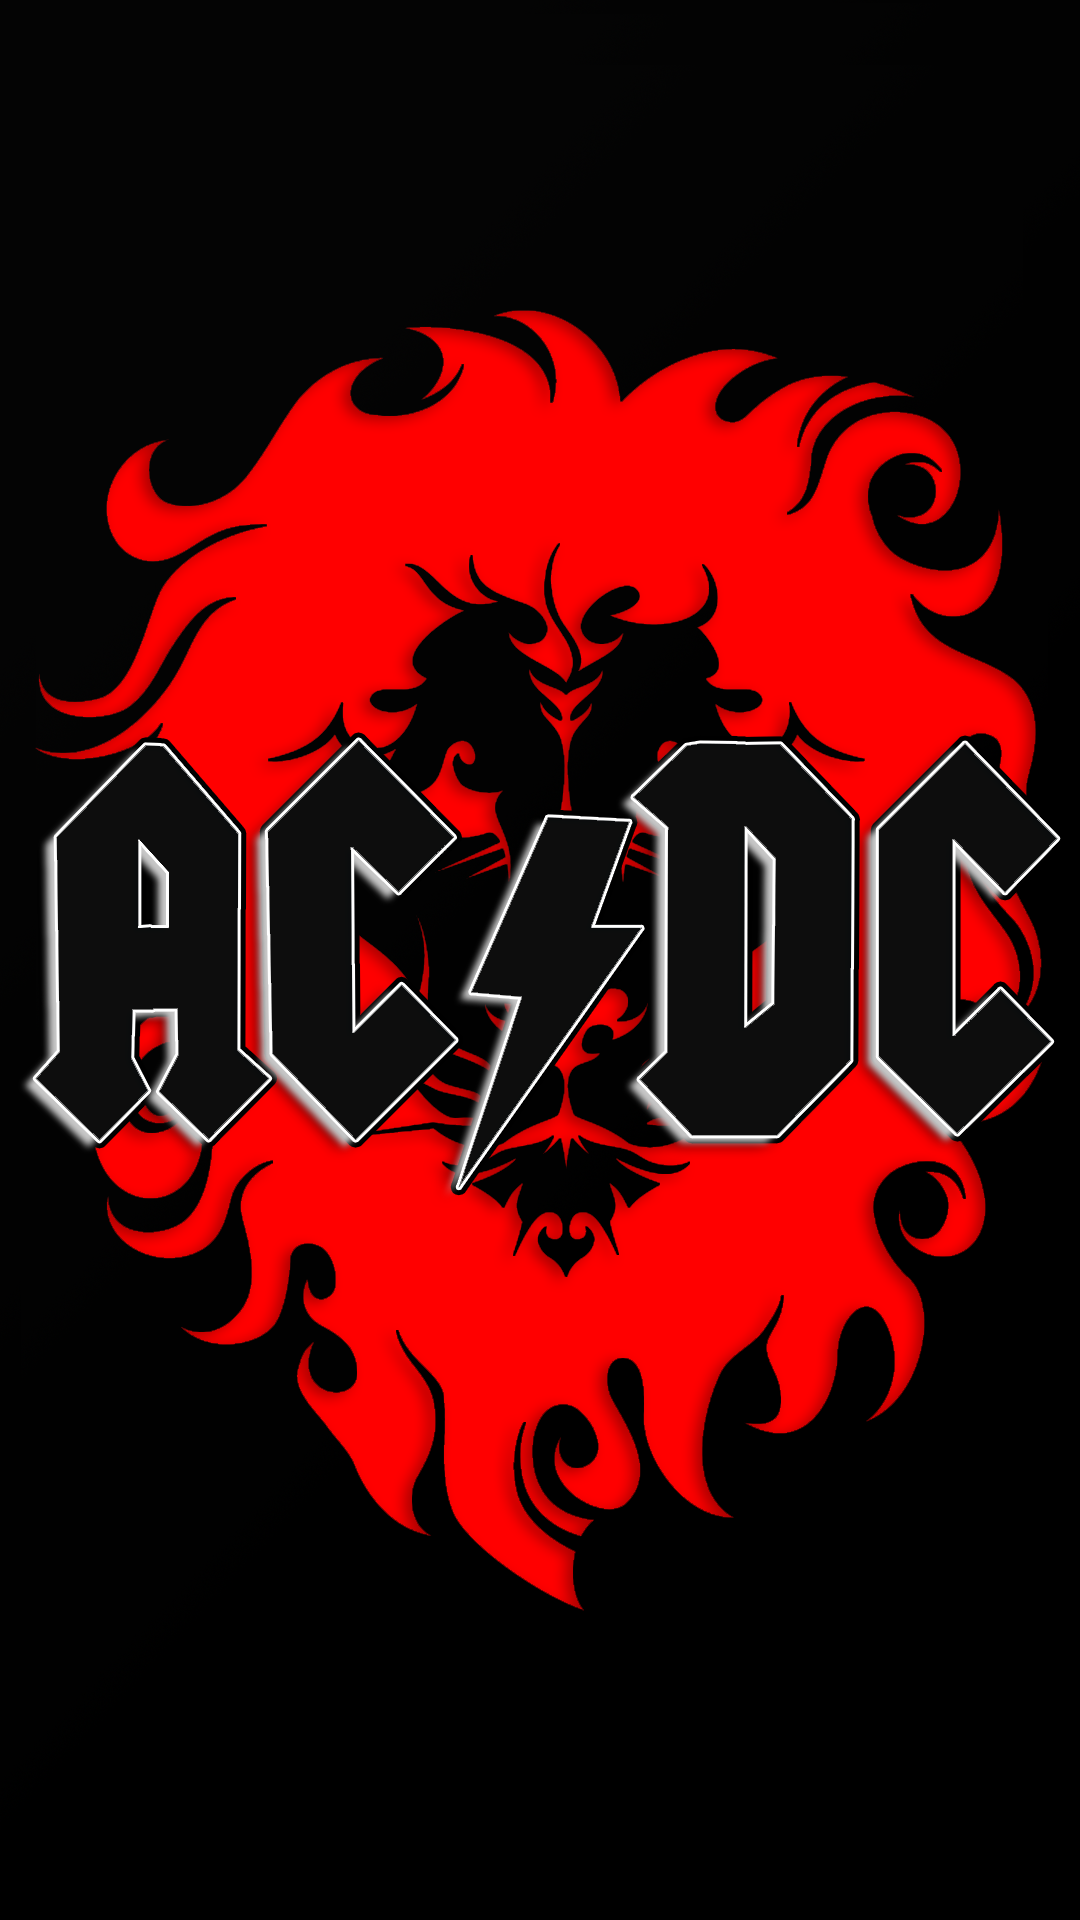 Download Our Hd Acdc Lion Wallpaper For Android Phones 0004